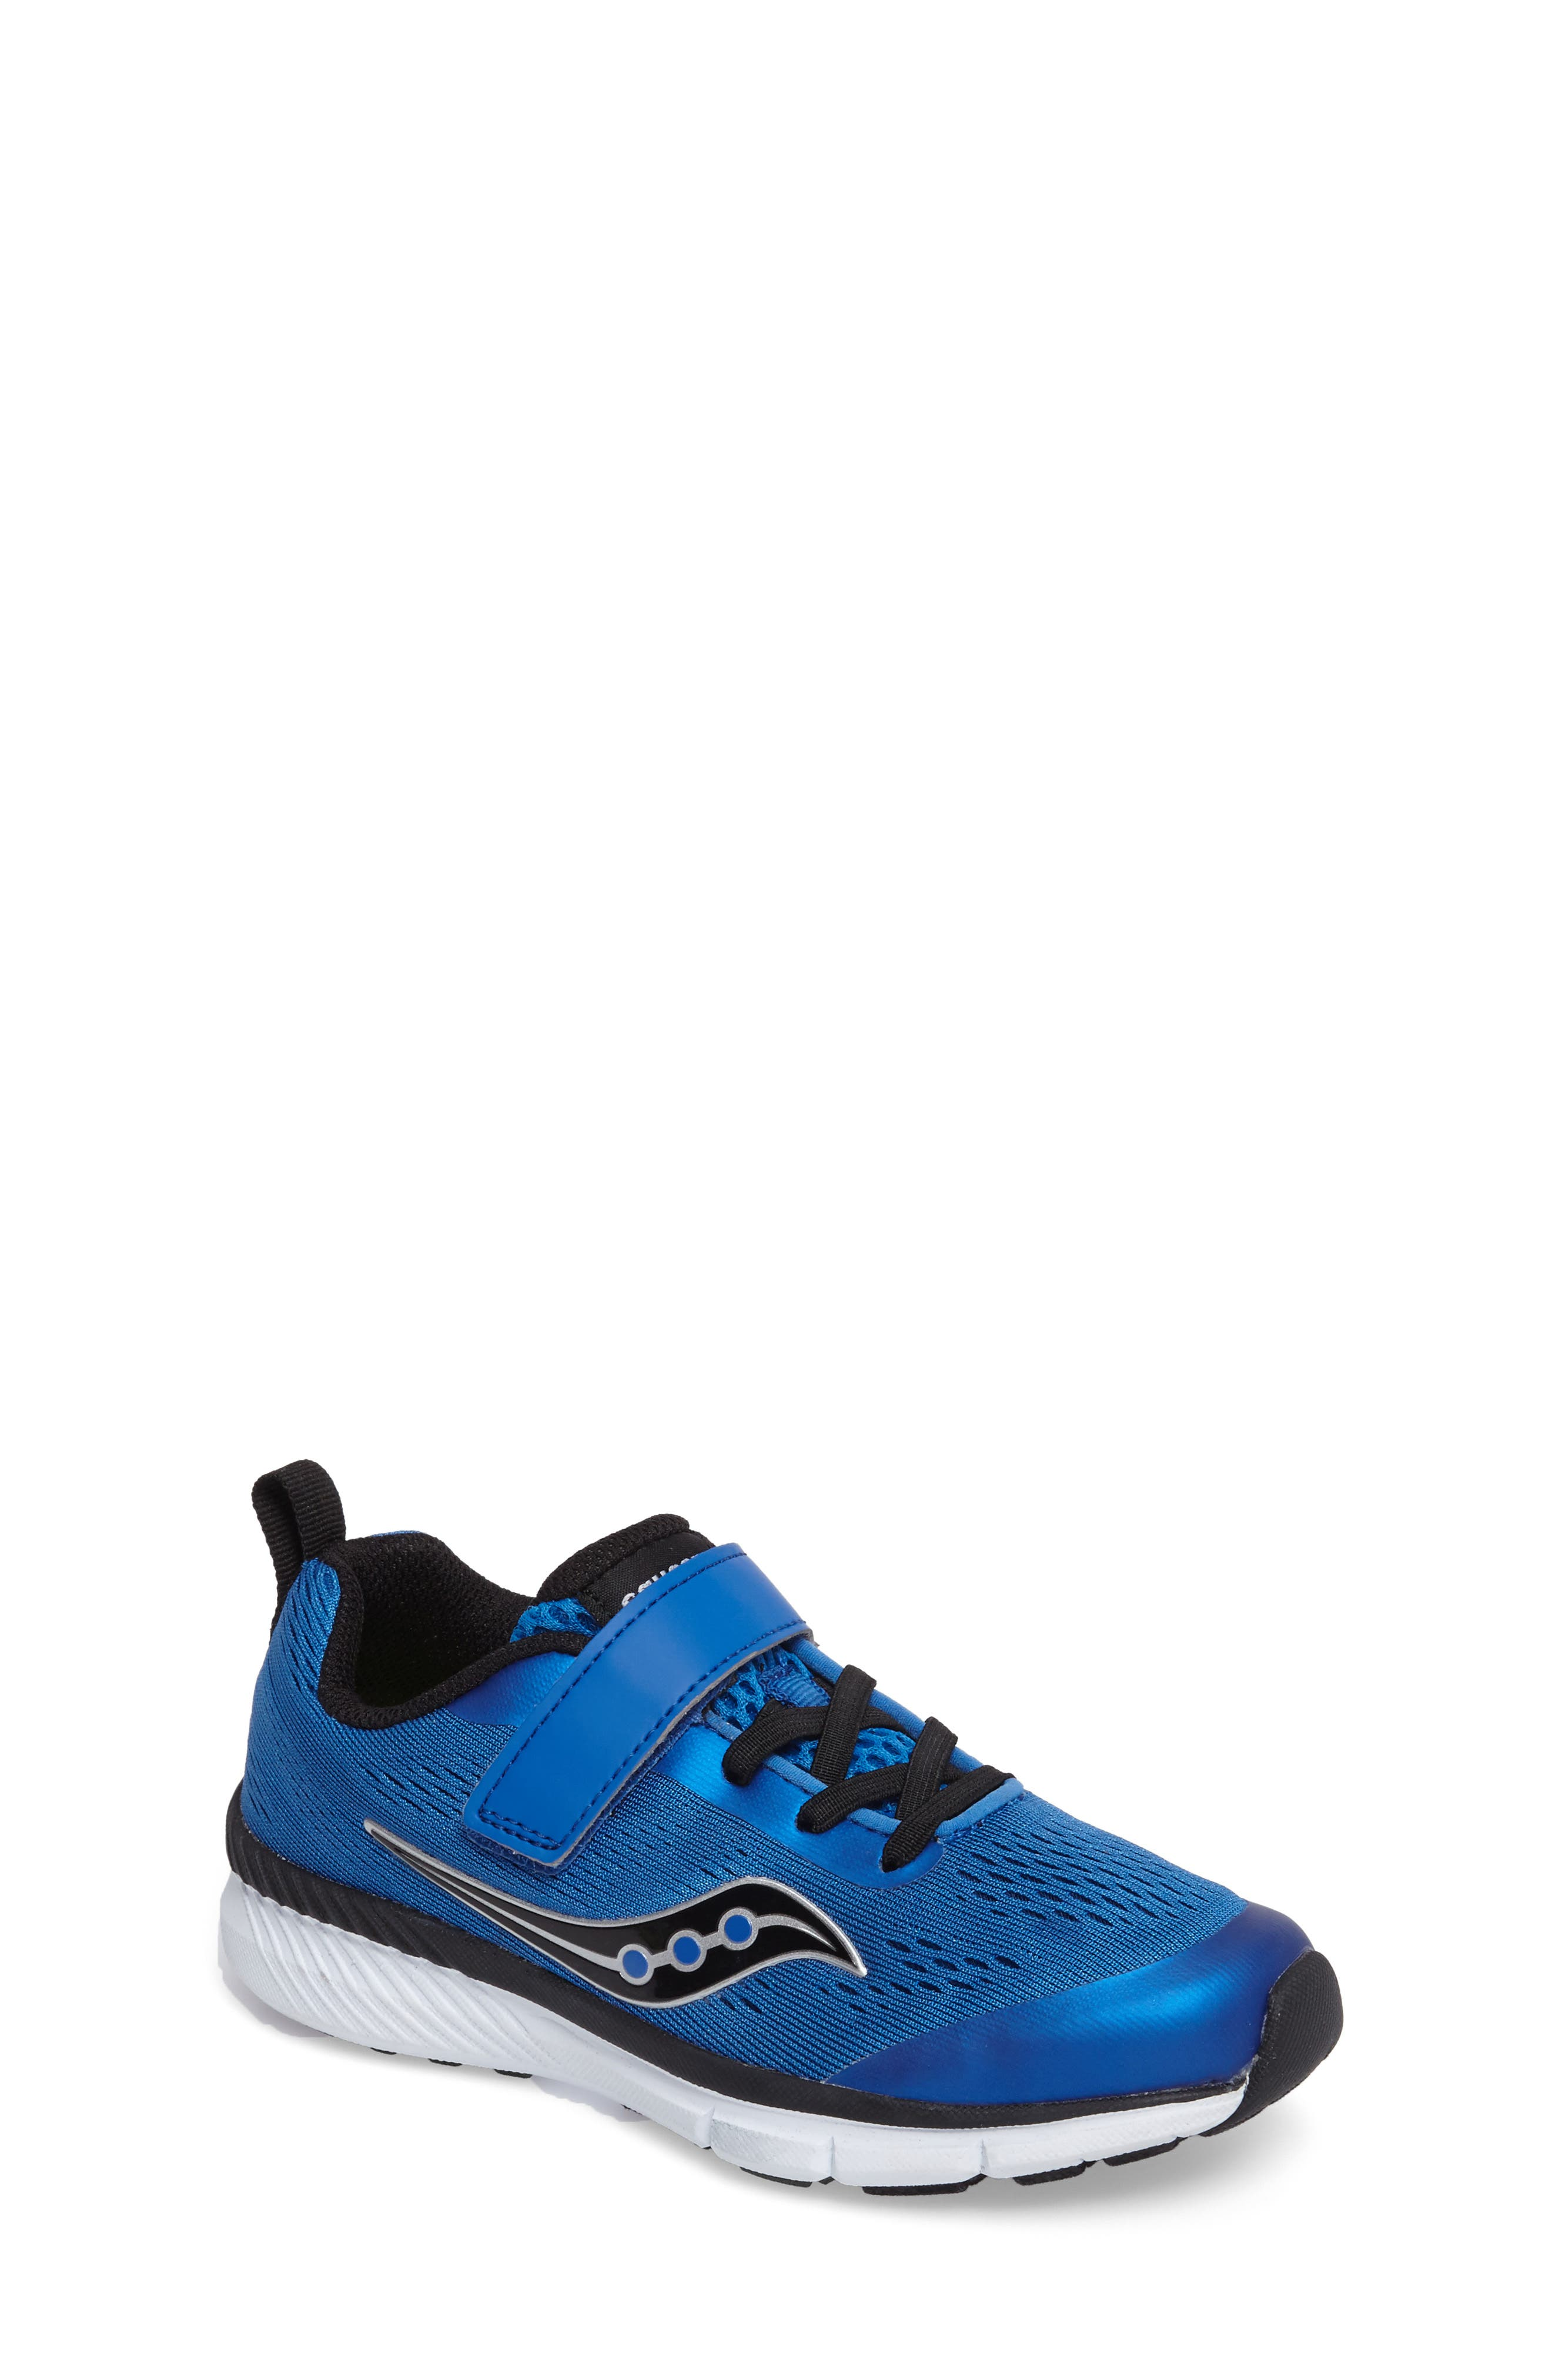 Alternate Image 1 Selected - Saucony Ideal A/C Sneaker (Toddler & Little Kid)